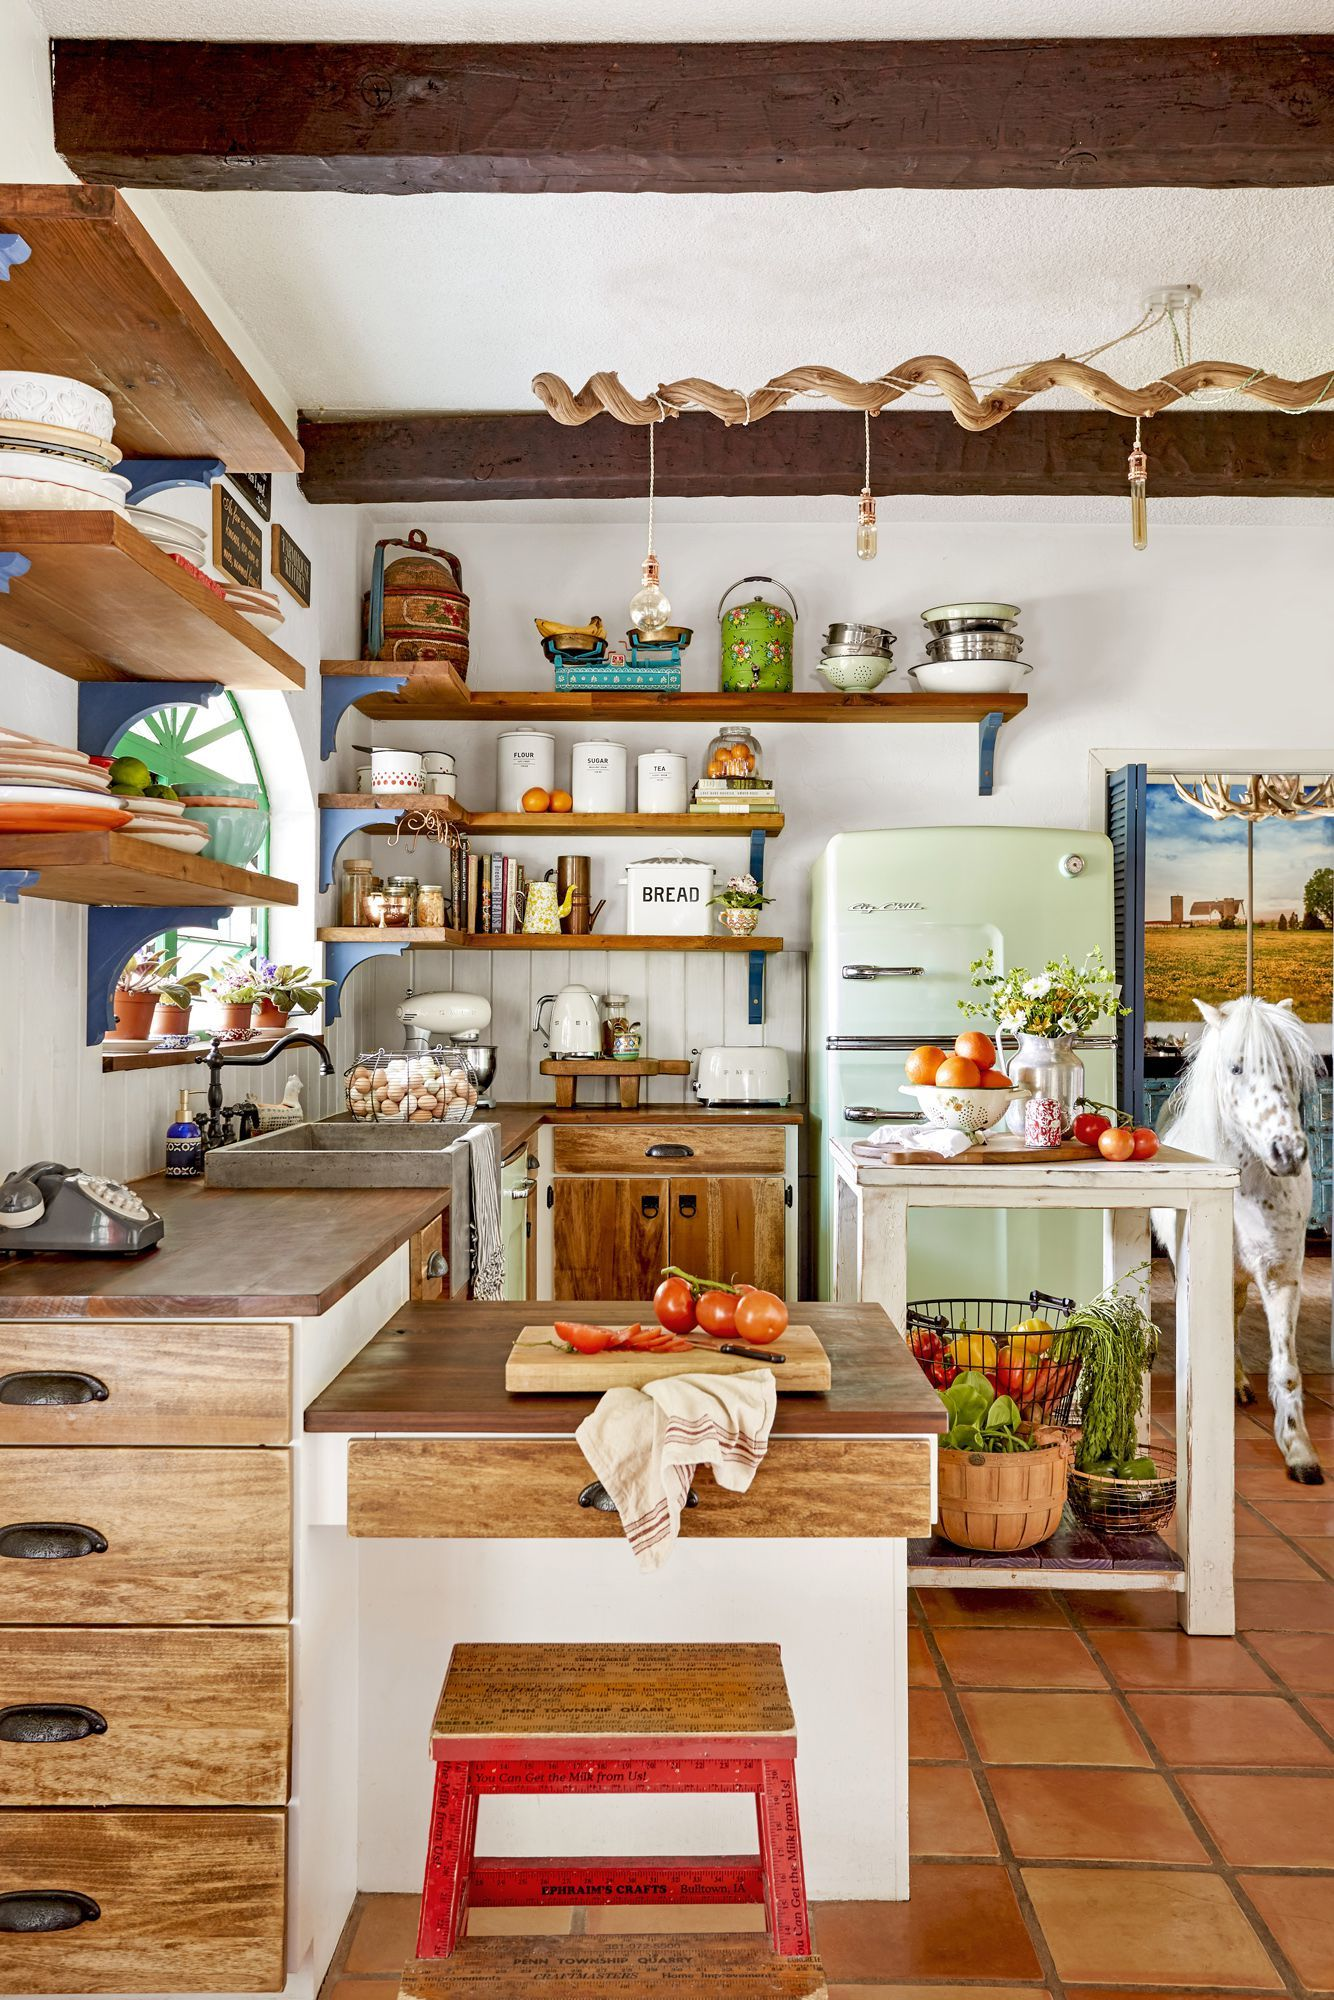 32 Kitchen Trends For 2020 New Cabinet And Color Design Ideas